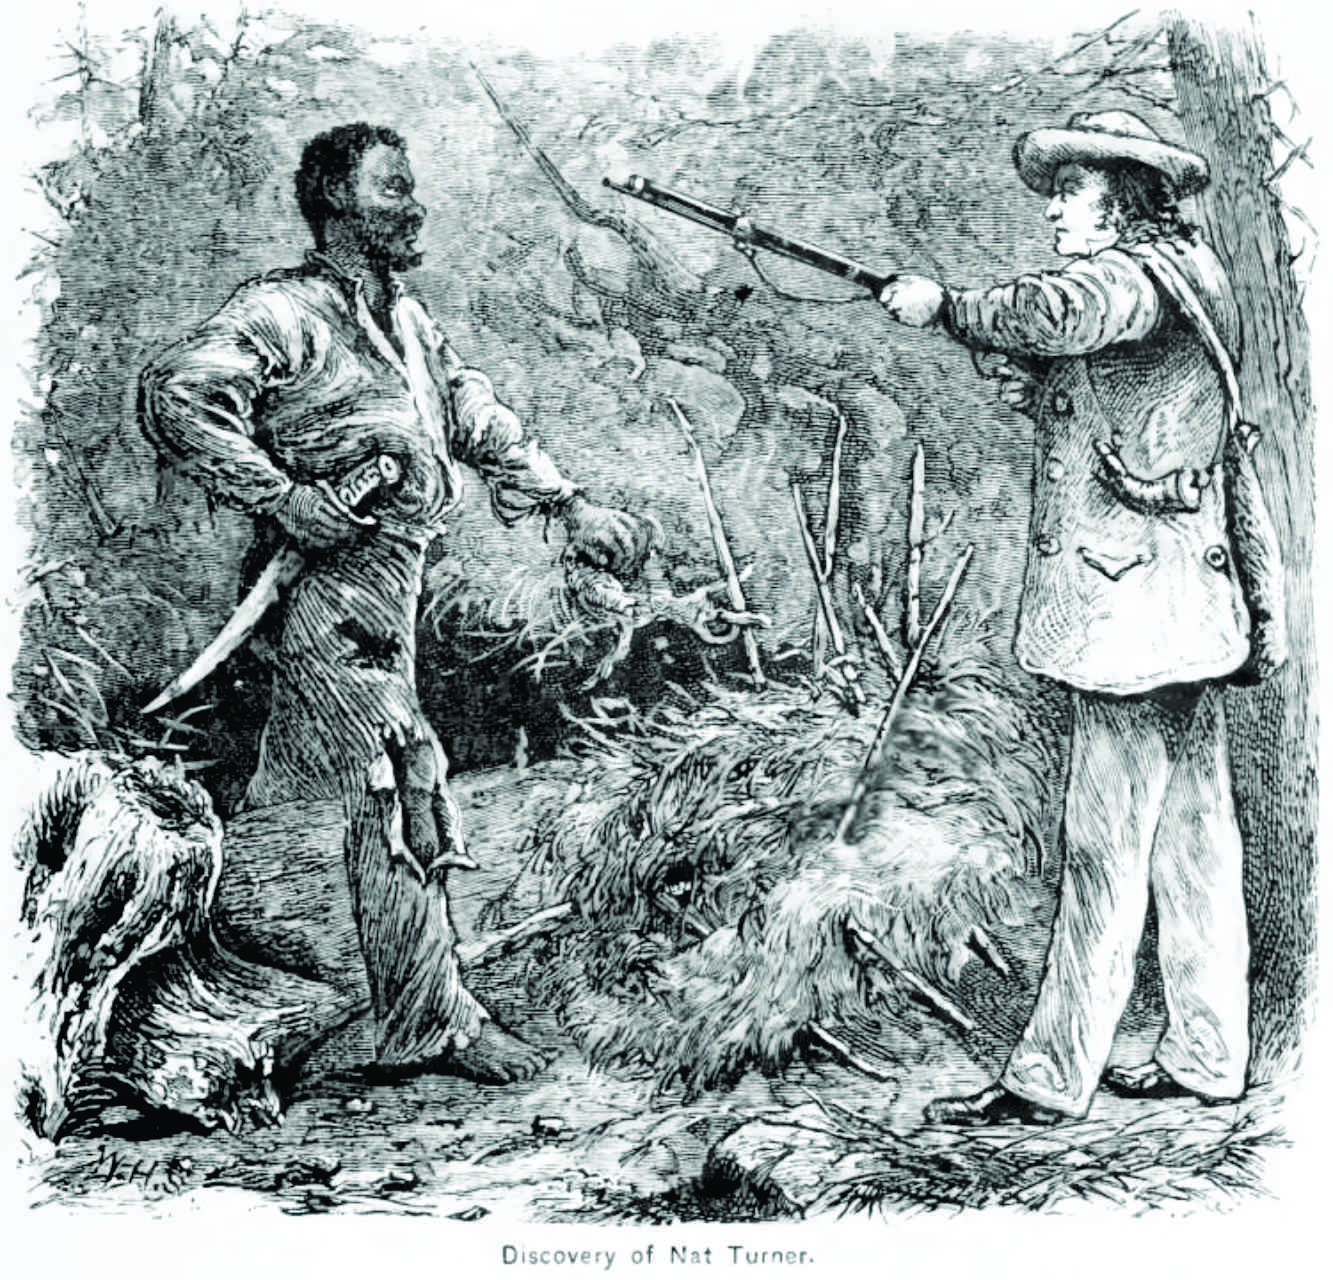 capture of Nat Turner